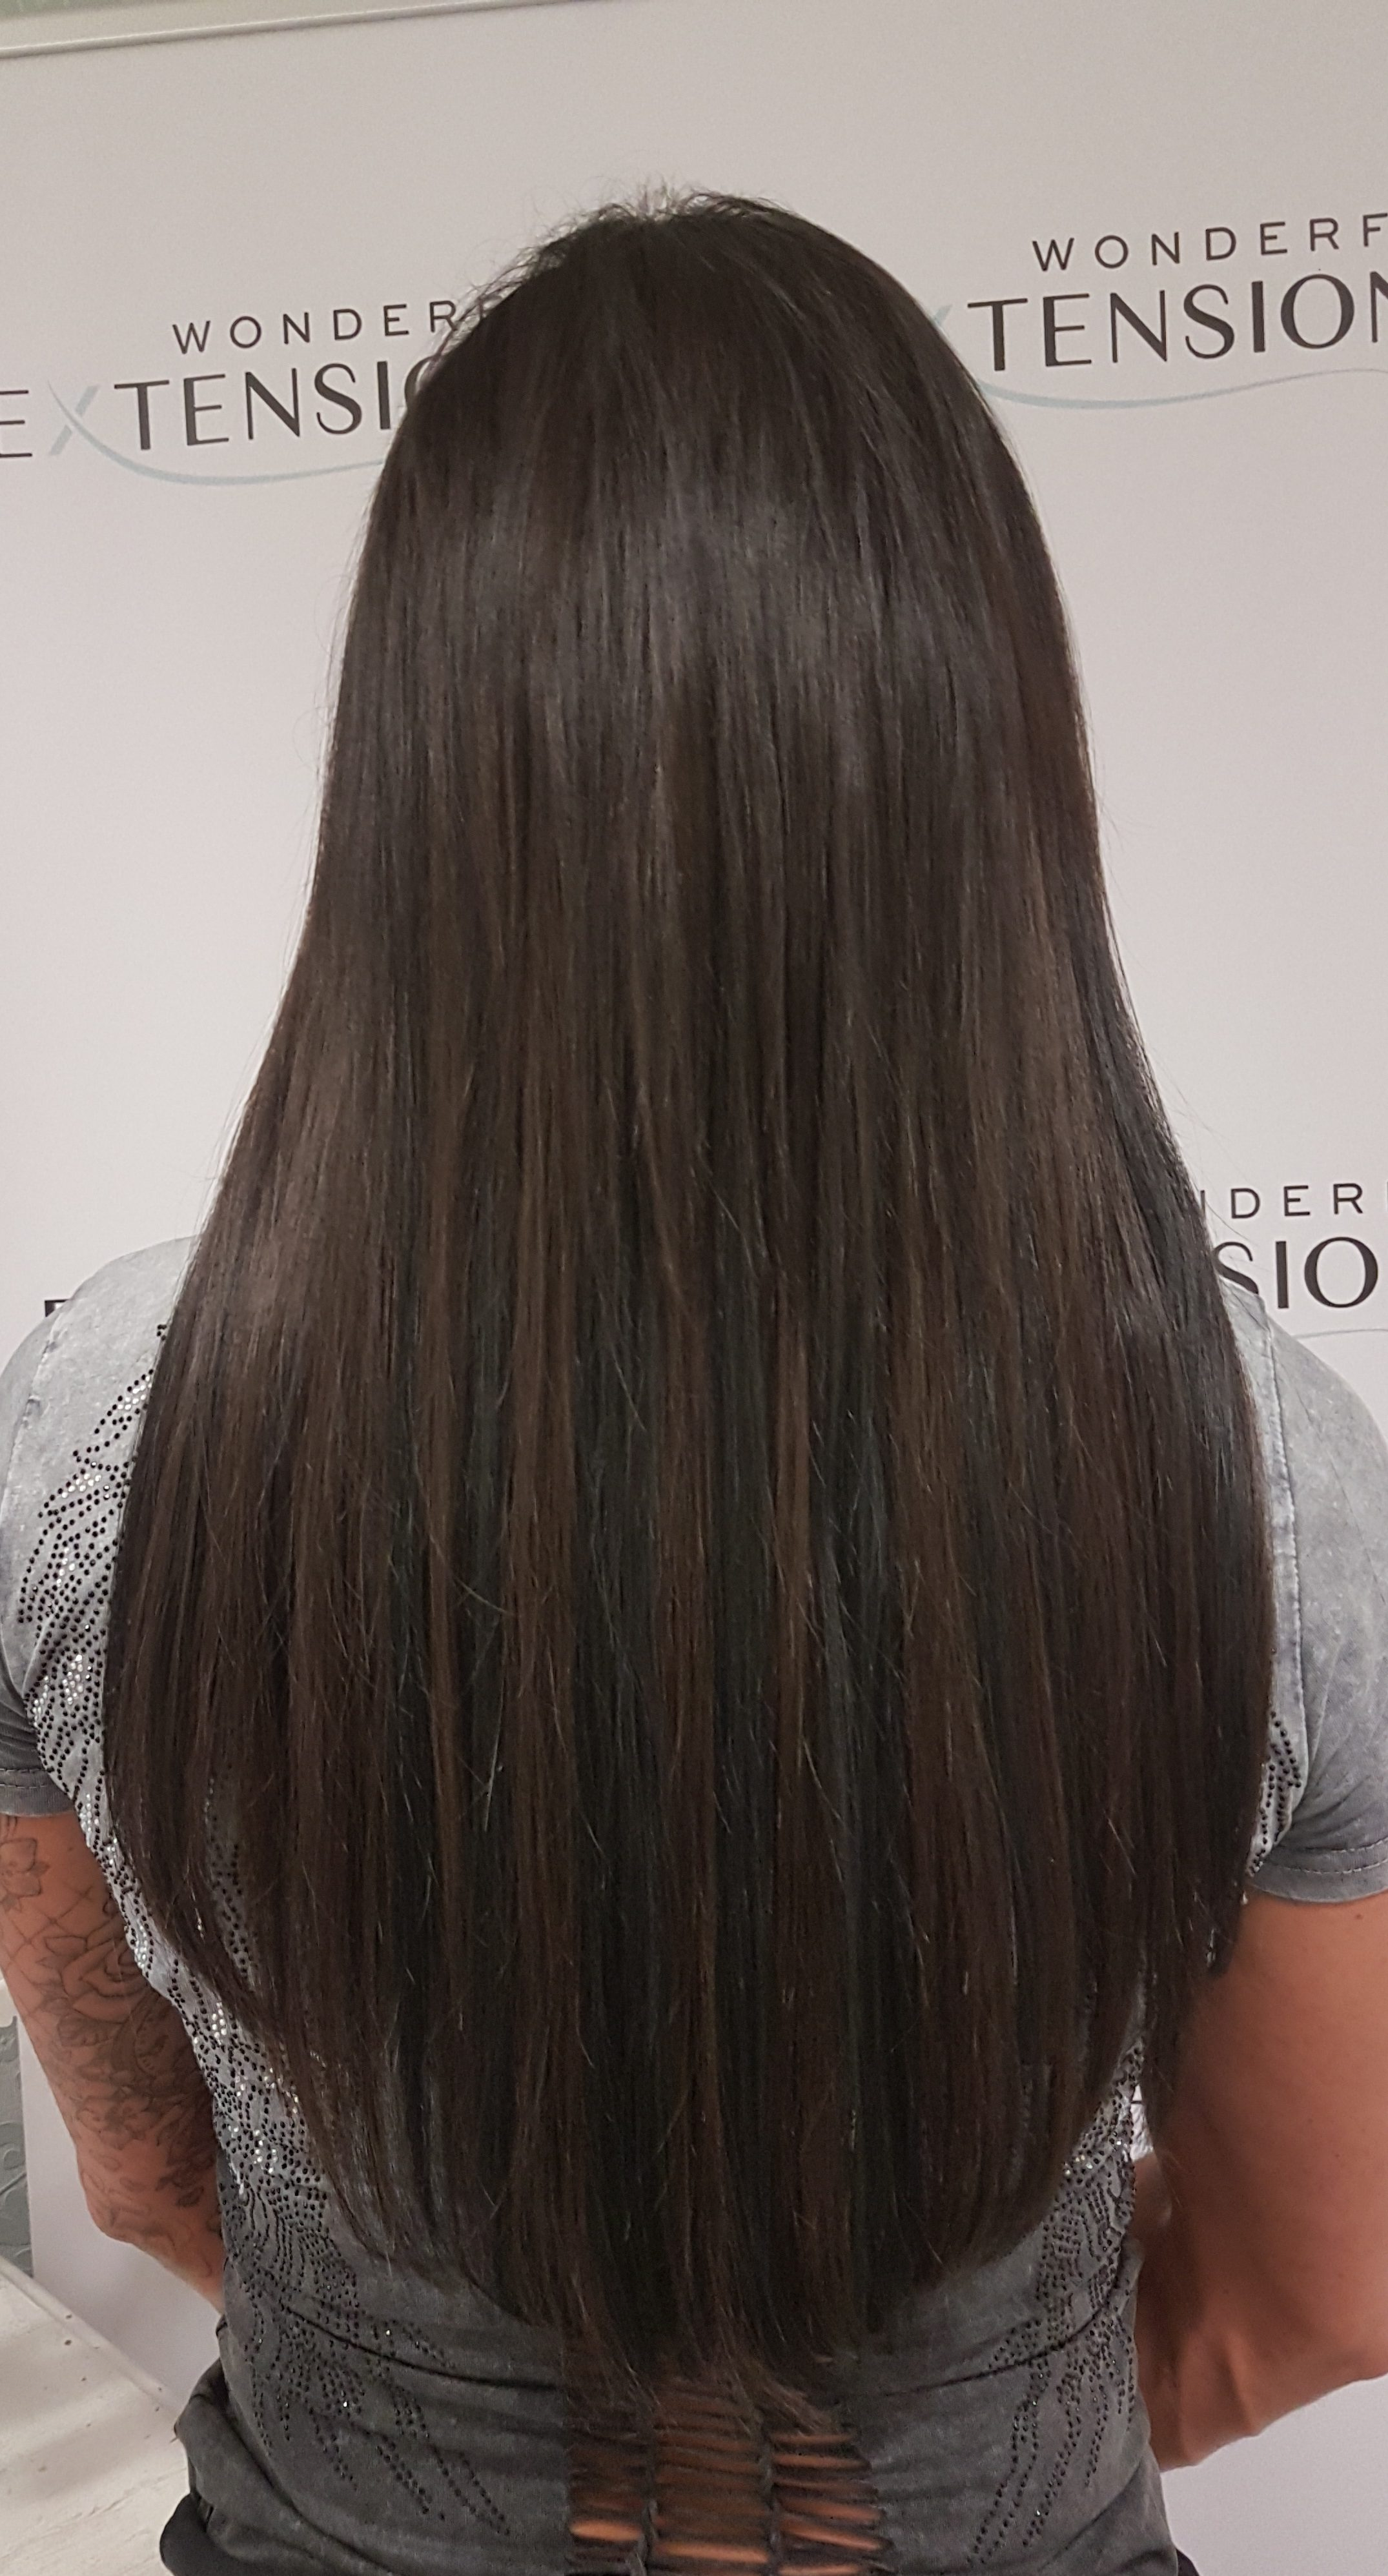 Hair Extensions London - Long Dark Brown